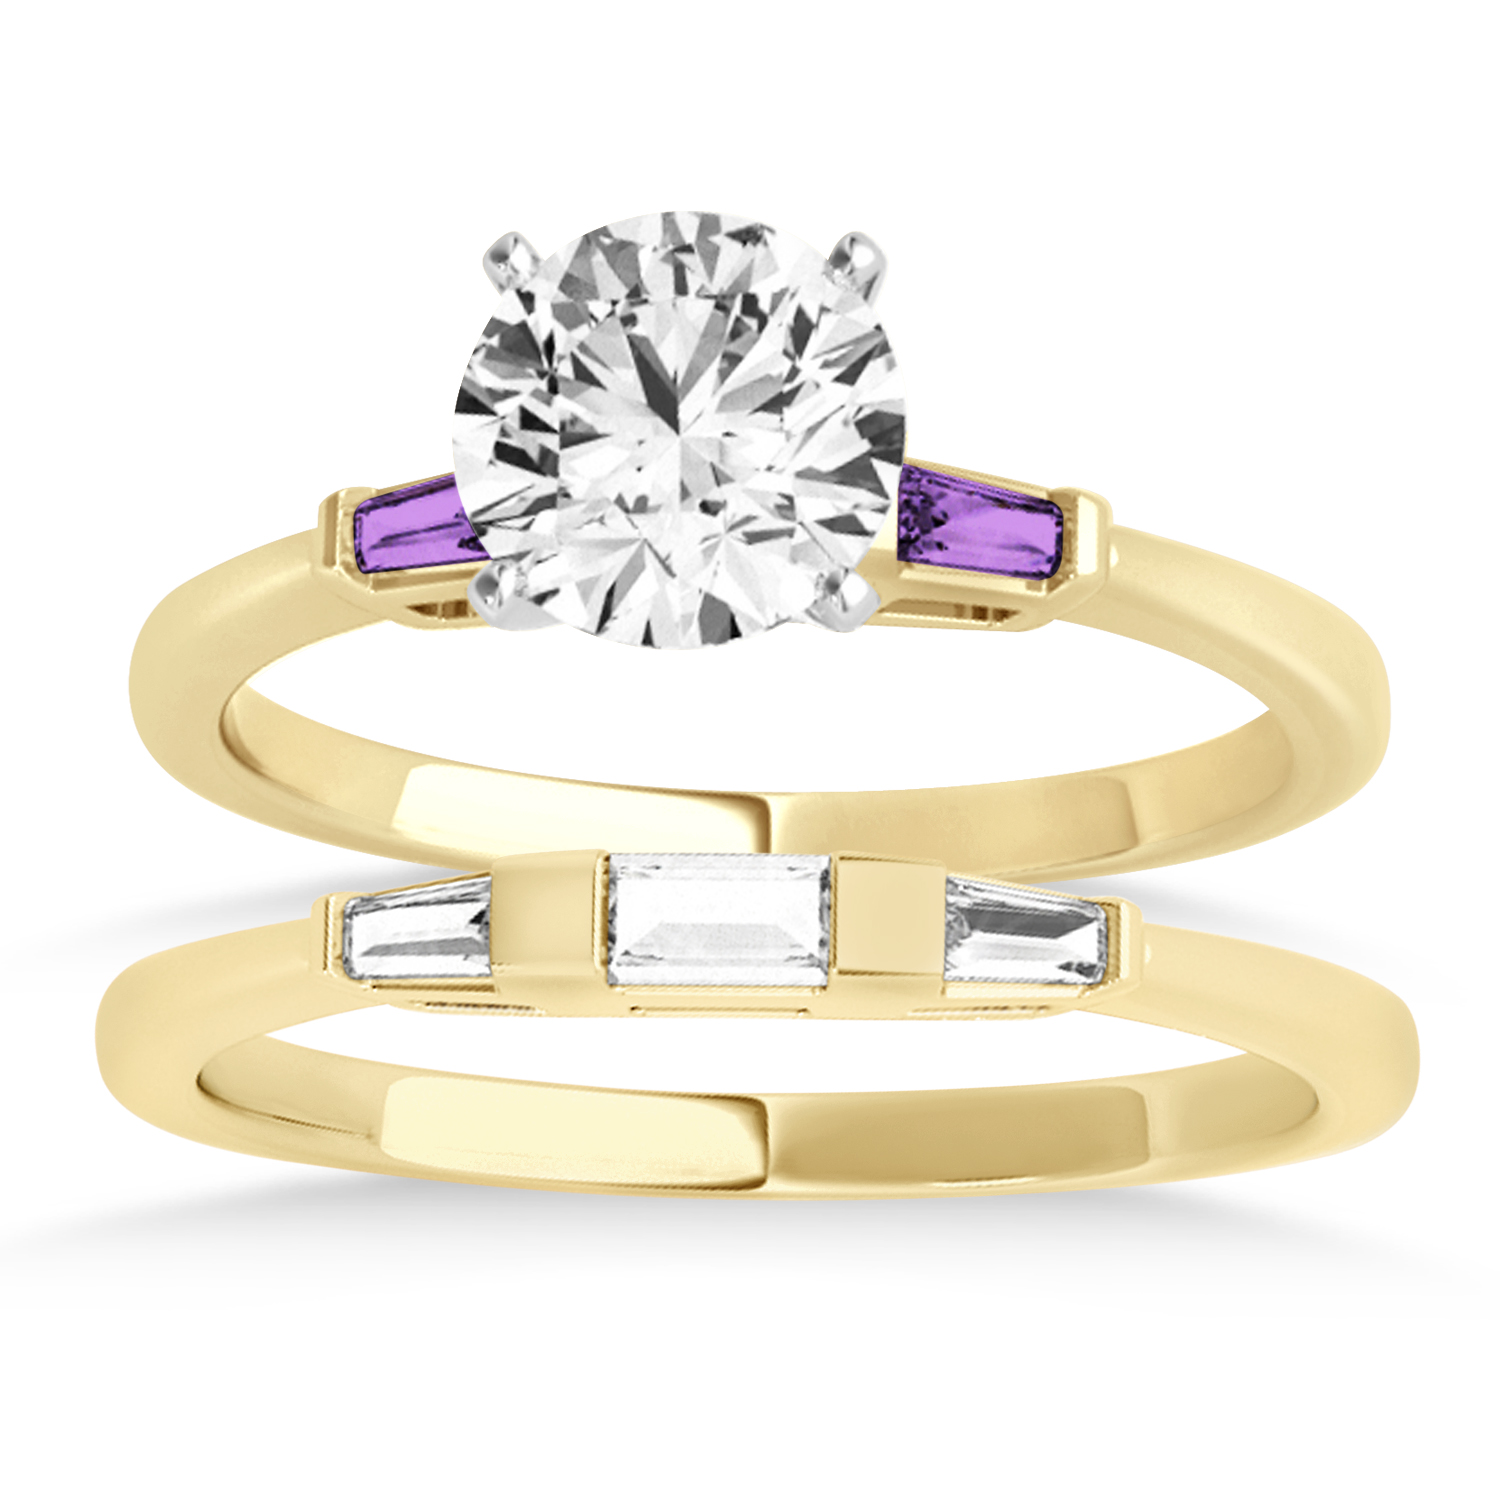 Tapered Baguette 3-Stone Amethyst Bridal Set 14k Yellow Gold (0.30ct)